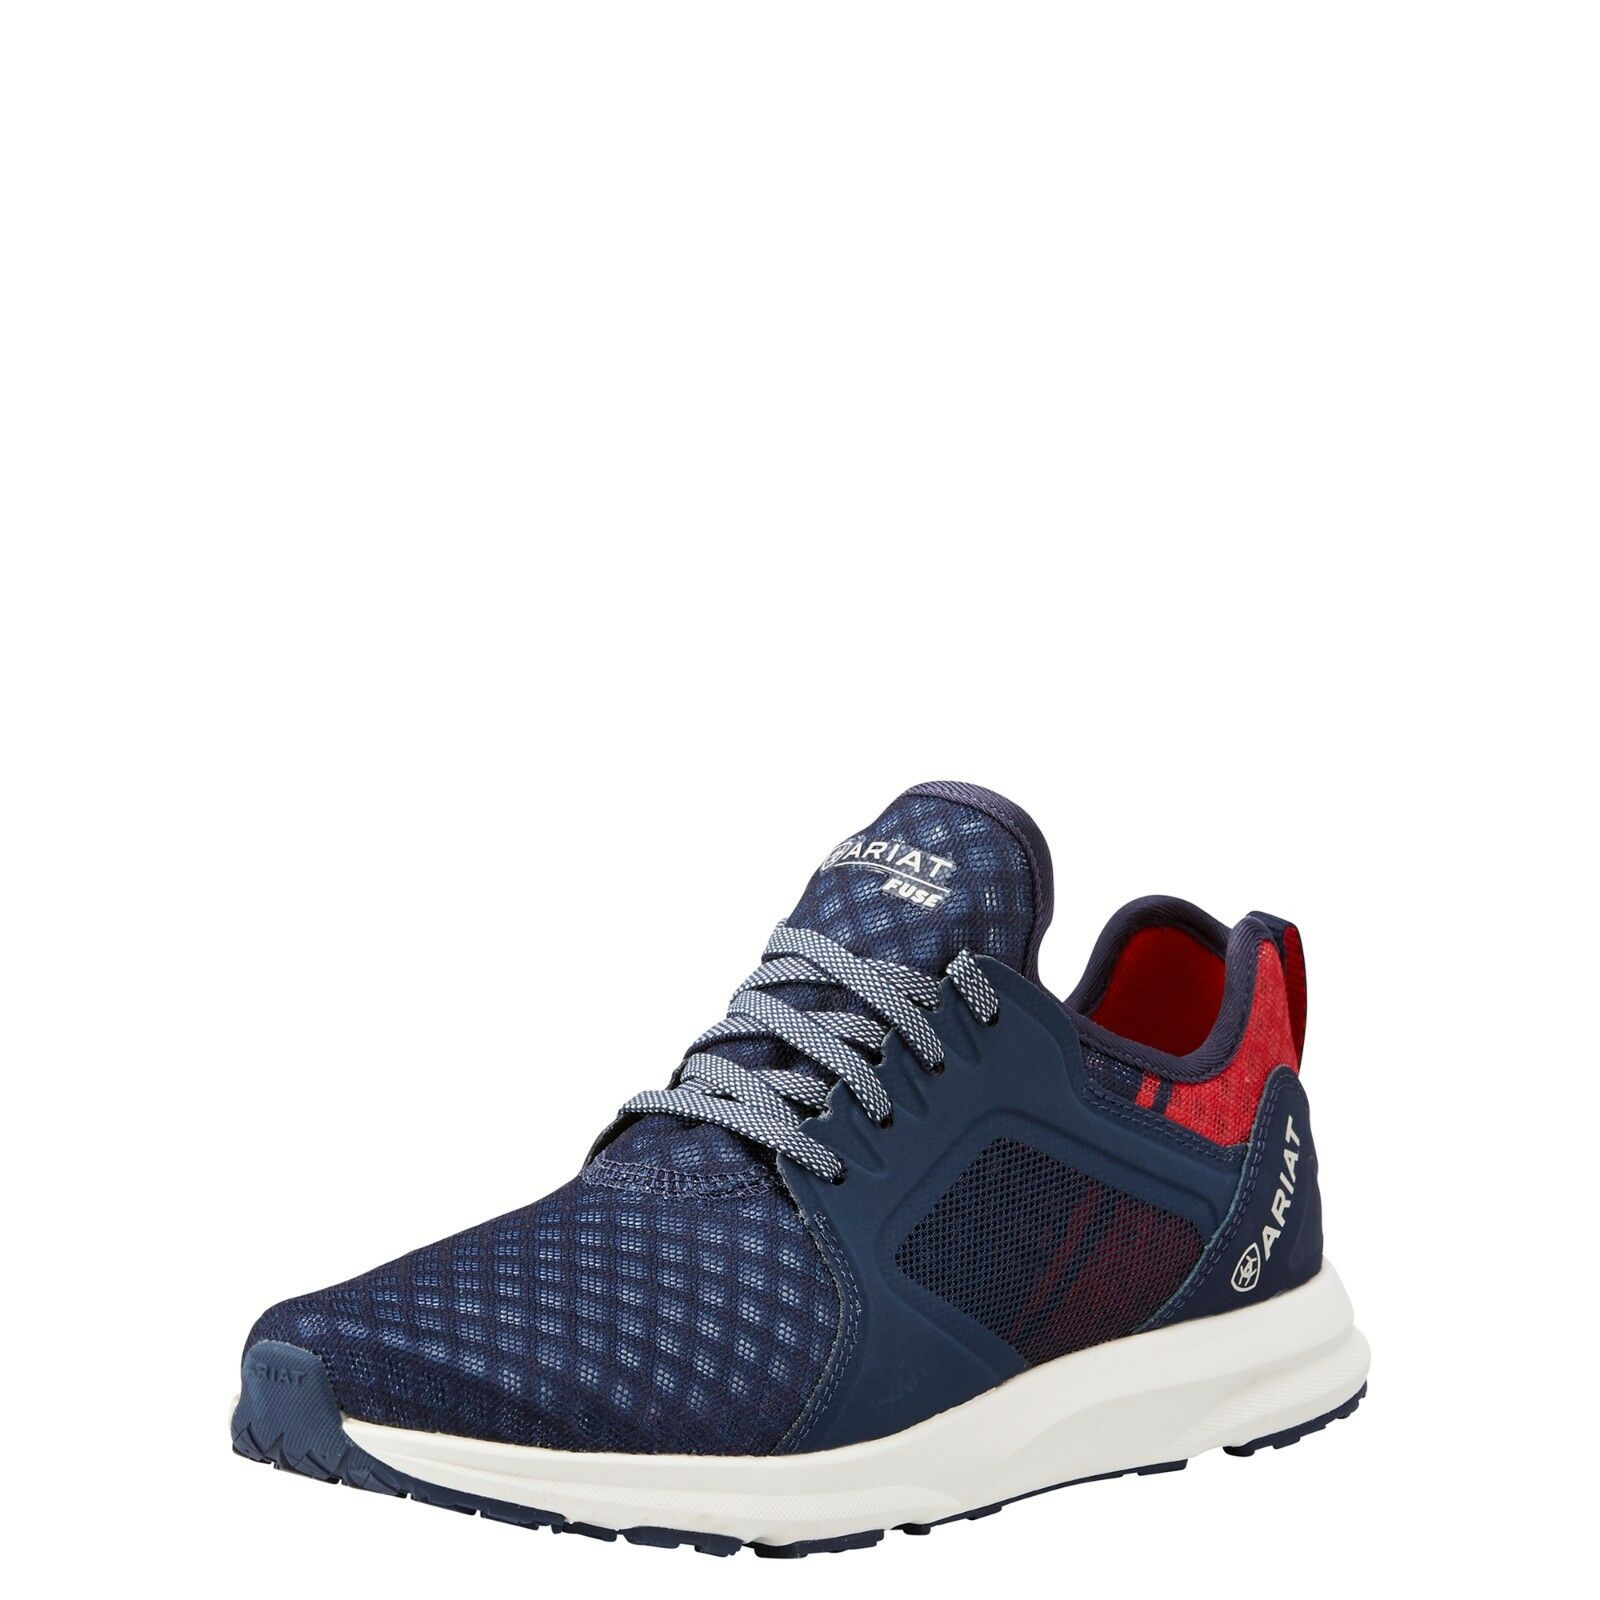 NEW FOR SPRING SUMMER 2018 Ariat Womens Fuse Trainers - Team Navy